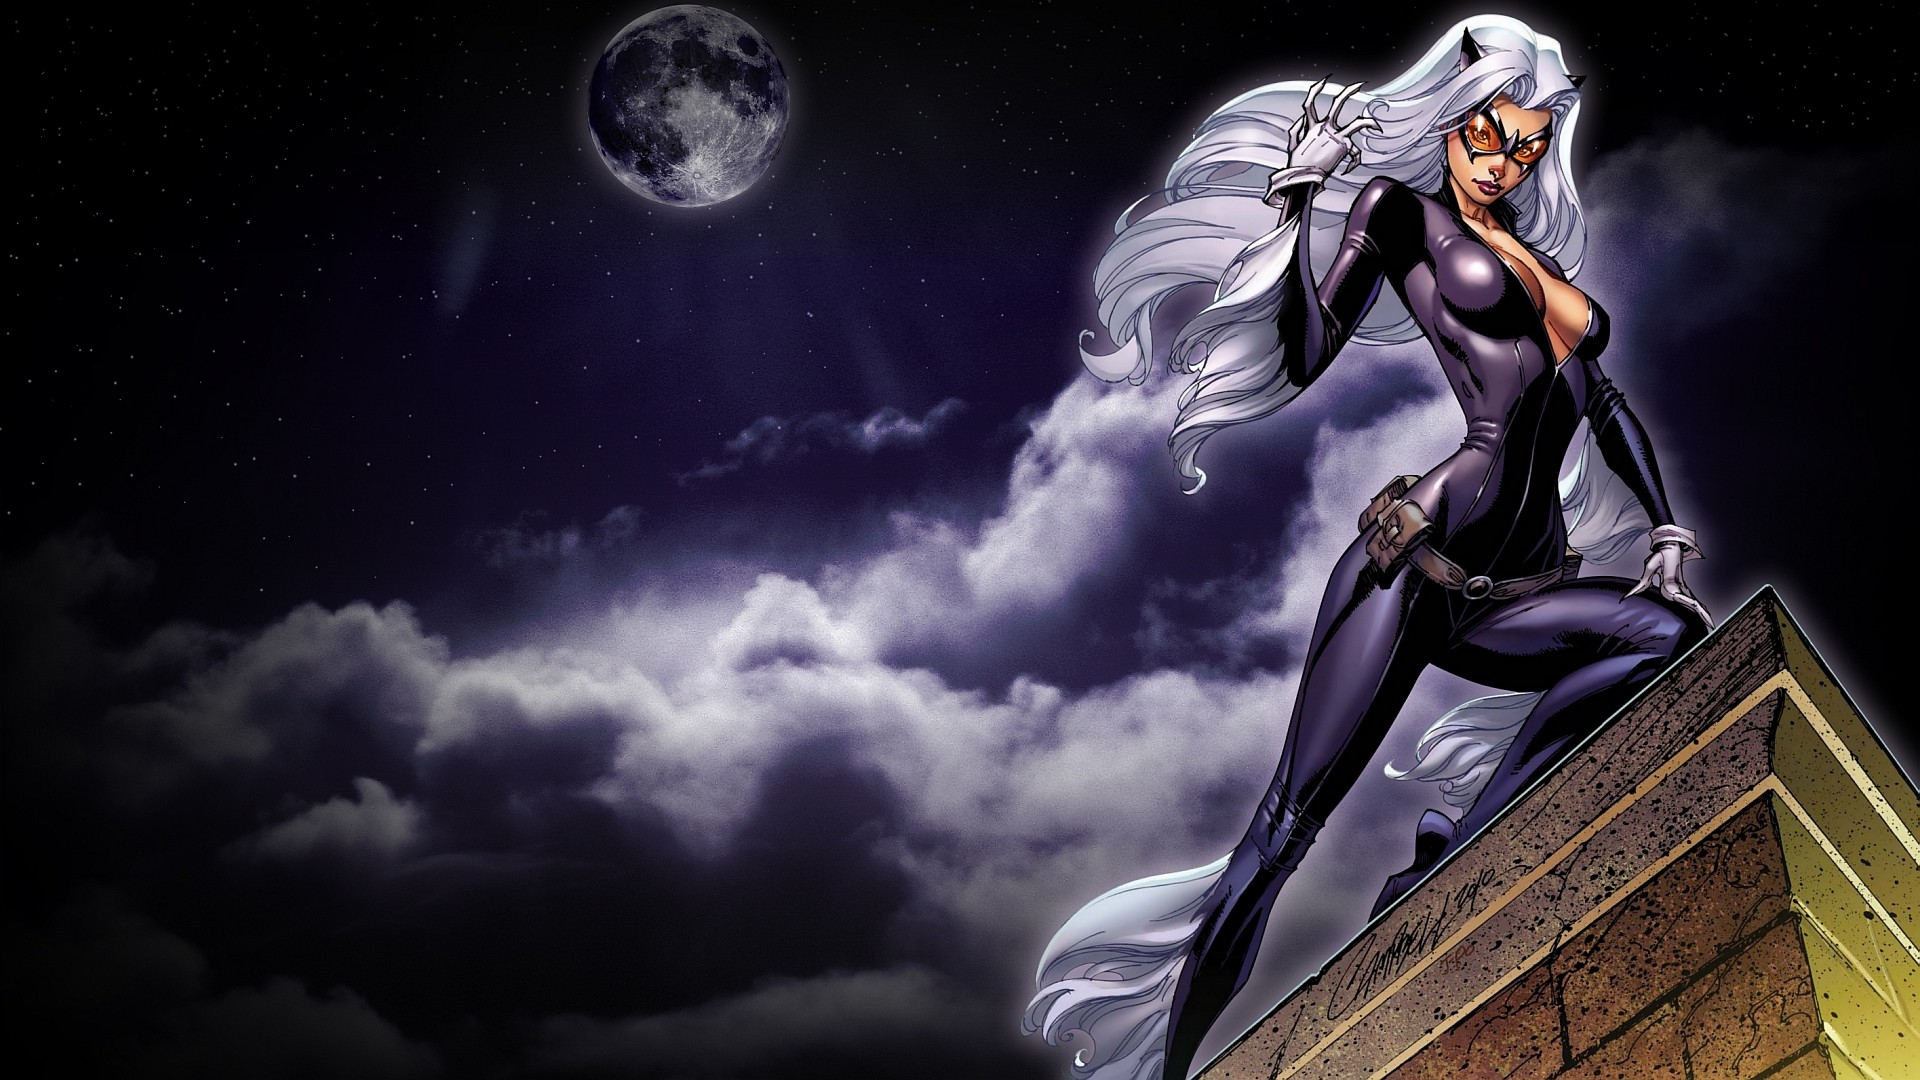 14 HD Catwoman Desktop Wallpapers For Free Download